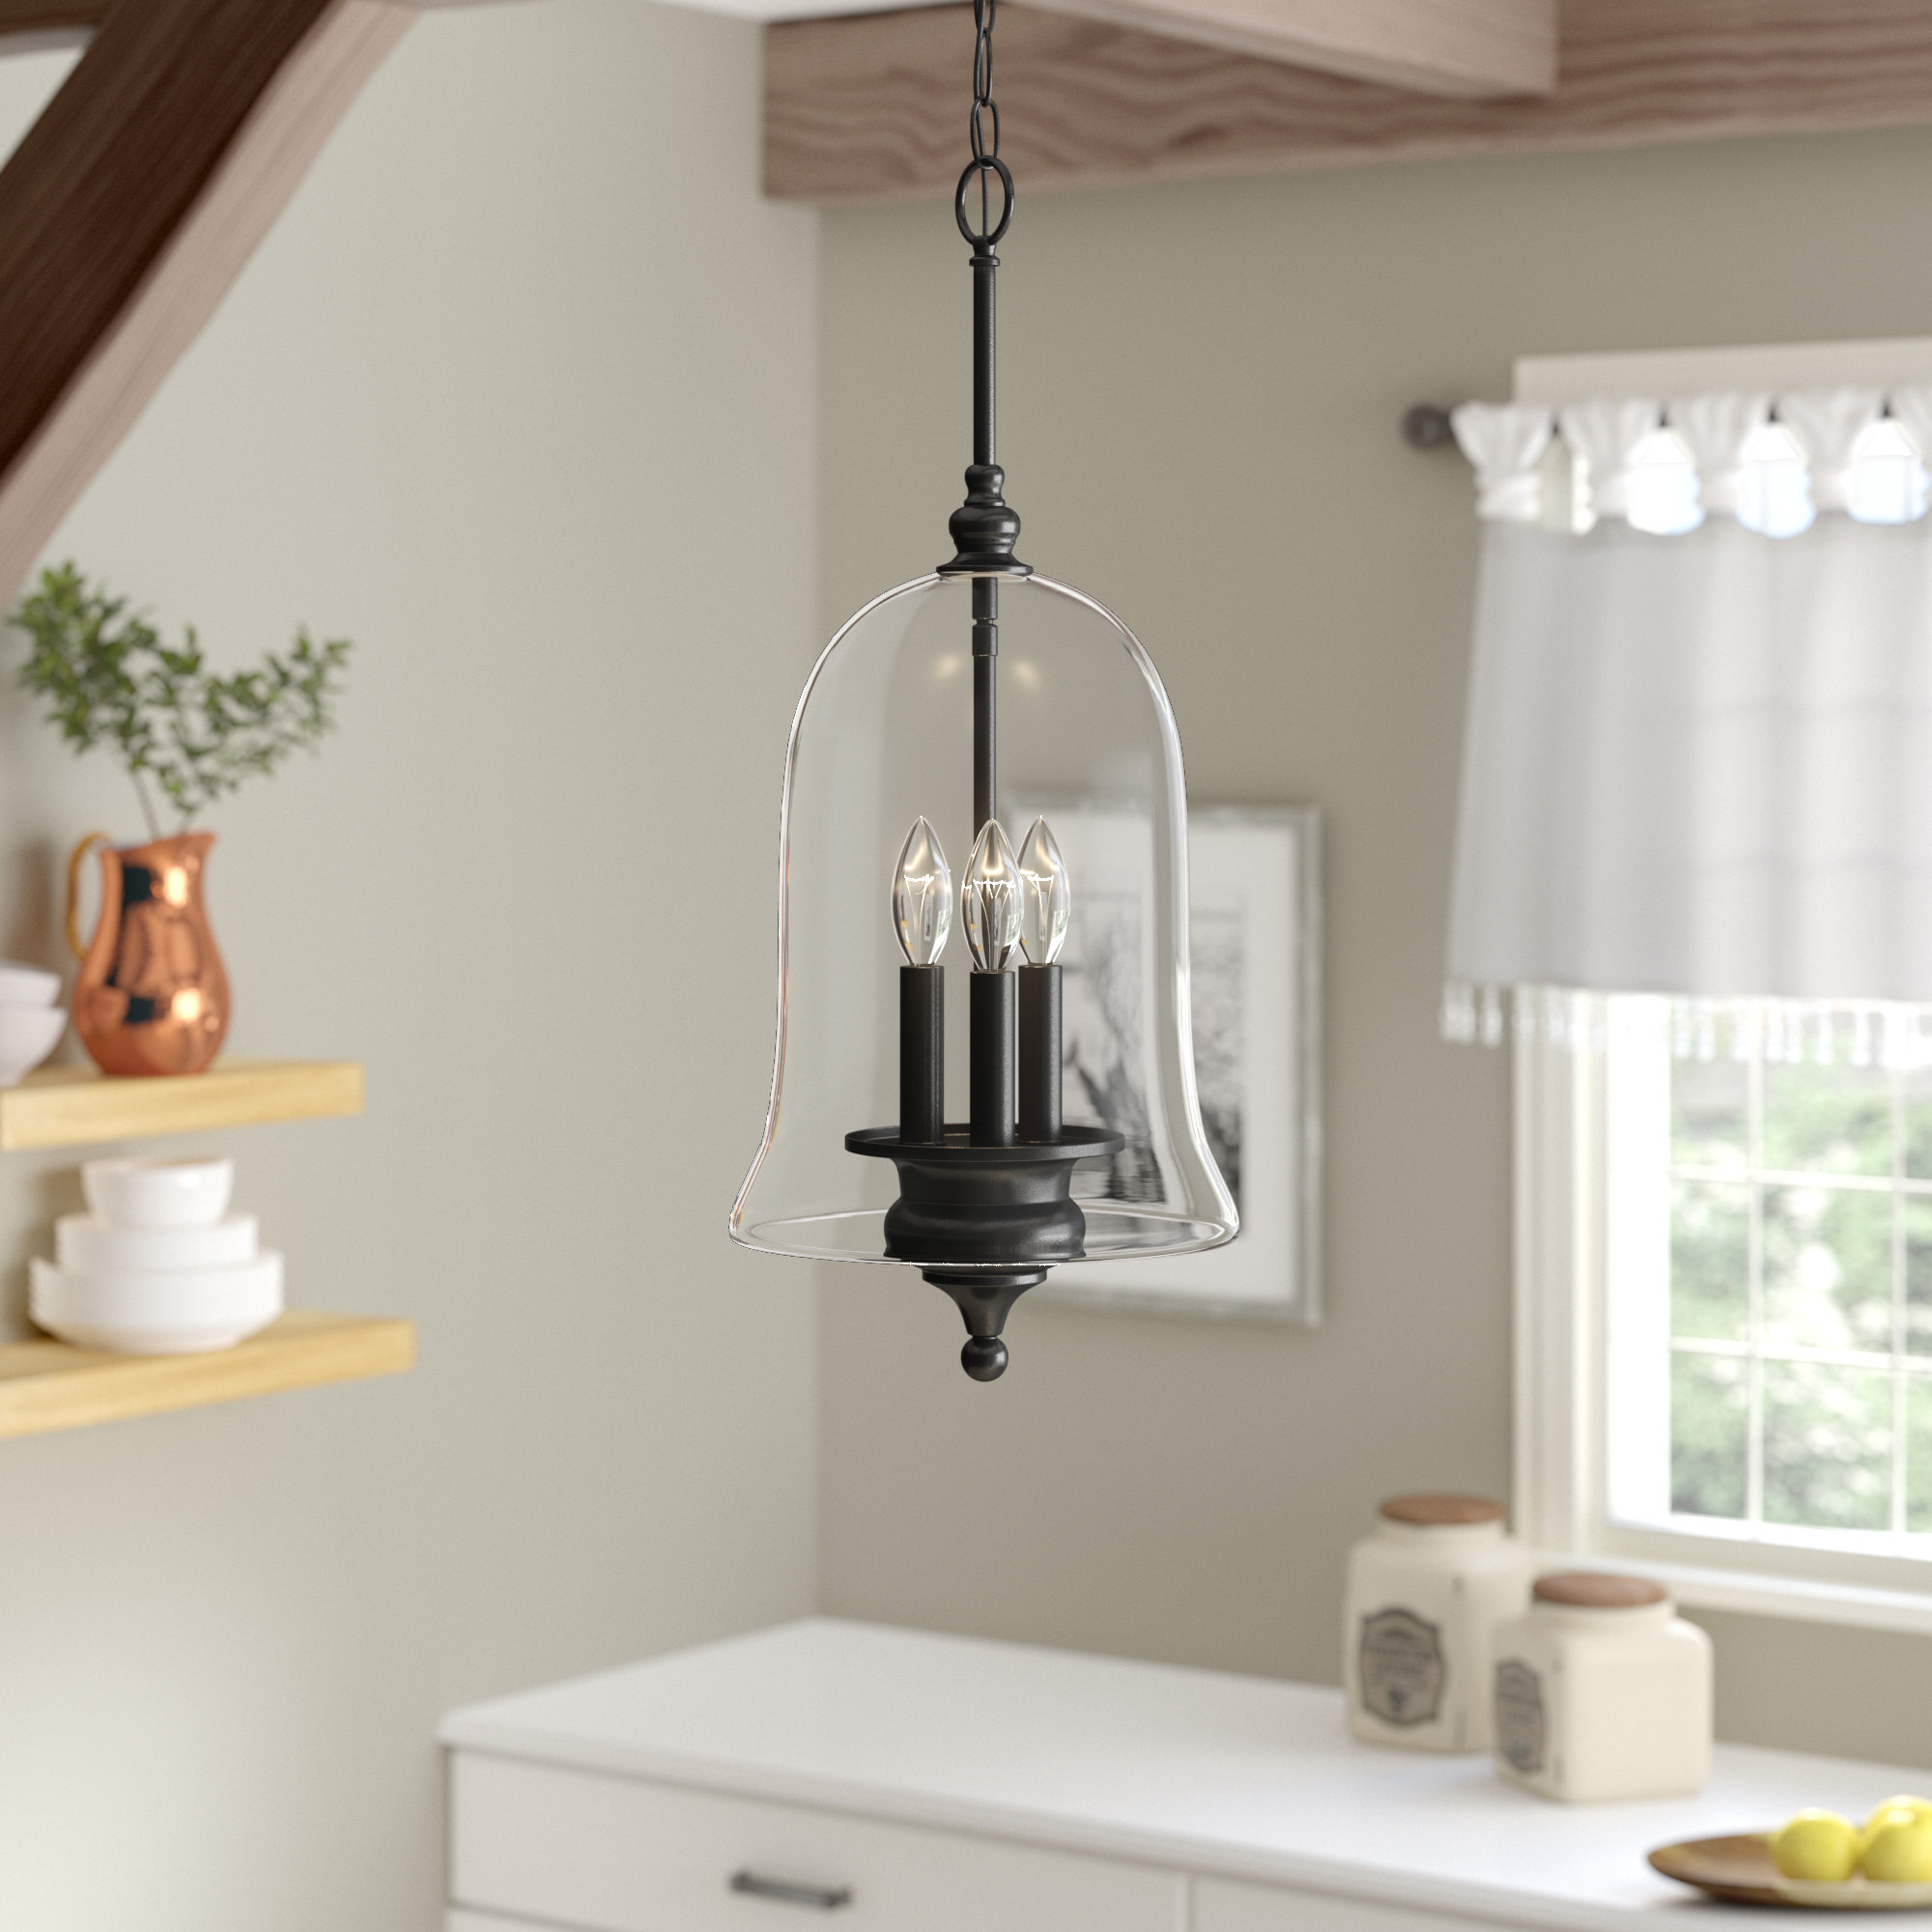 Youngberg 3 Light Single Bell Pendant With Dirksen 3 Light Single Cylinder Chandeliers (View 7 of 30)